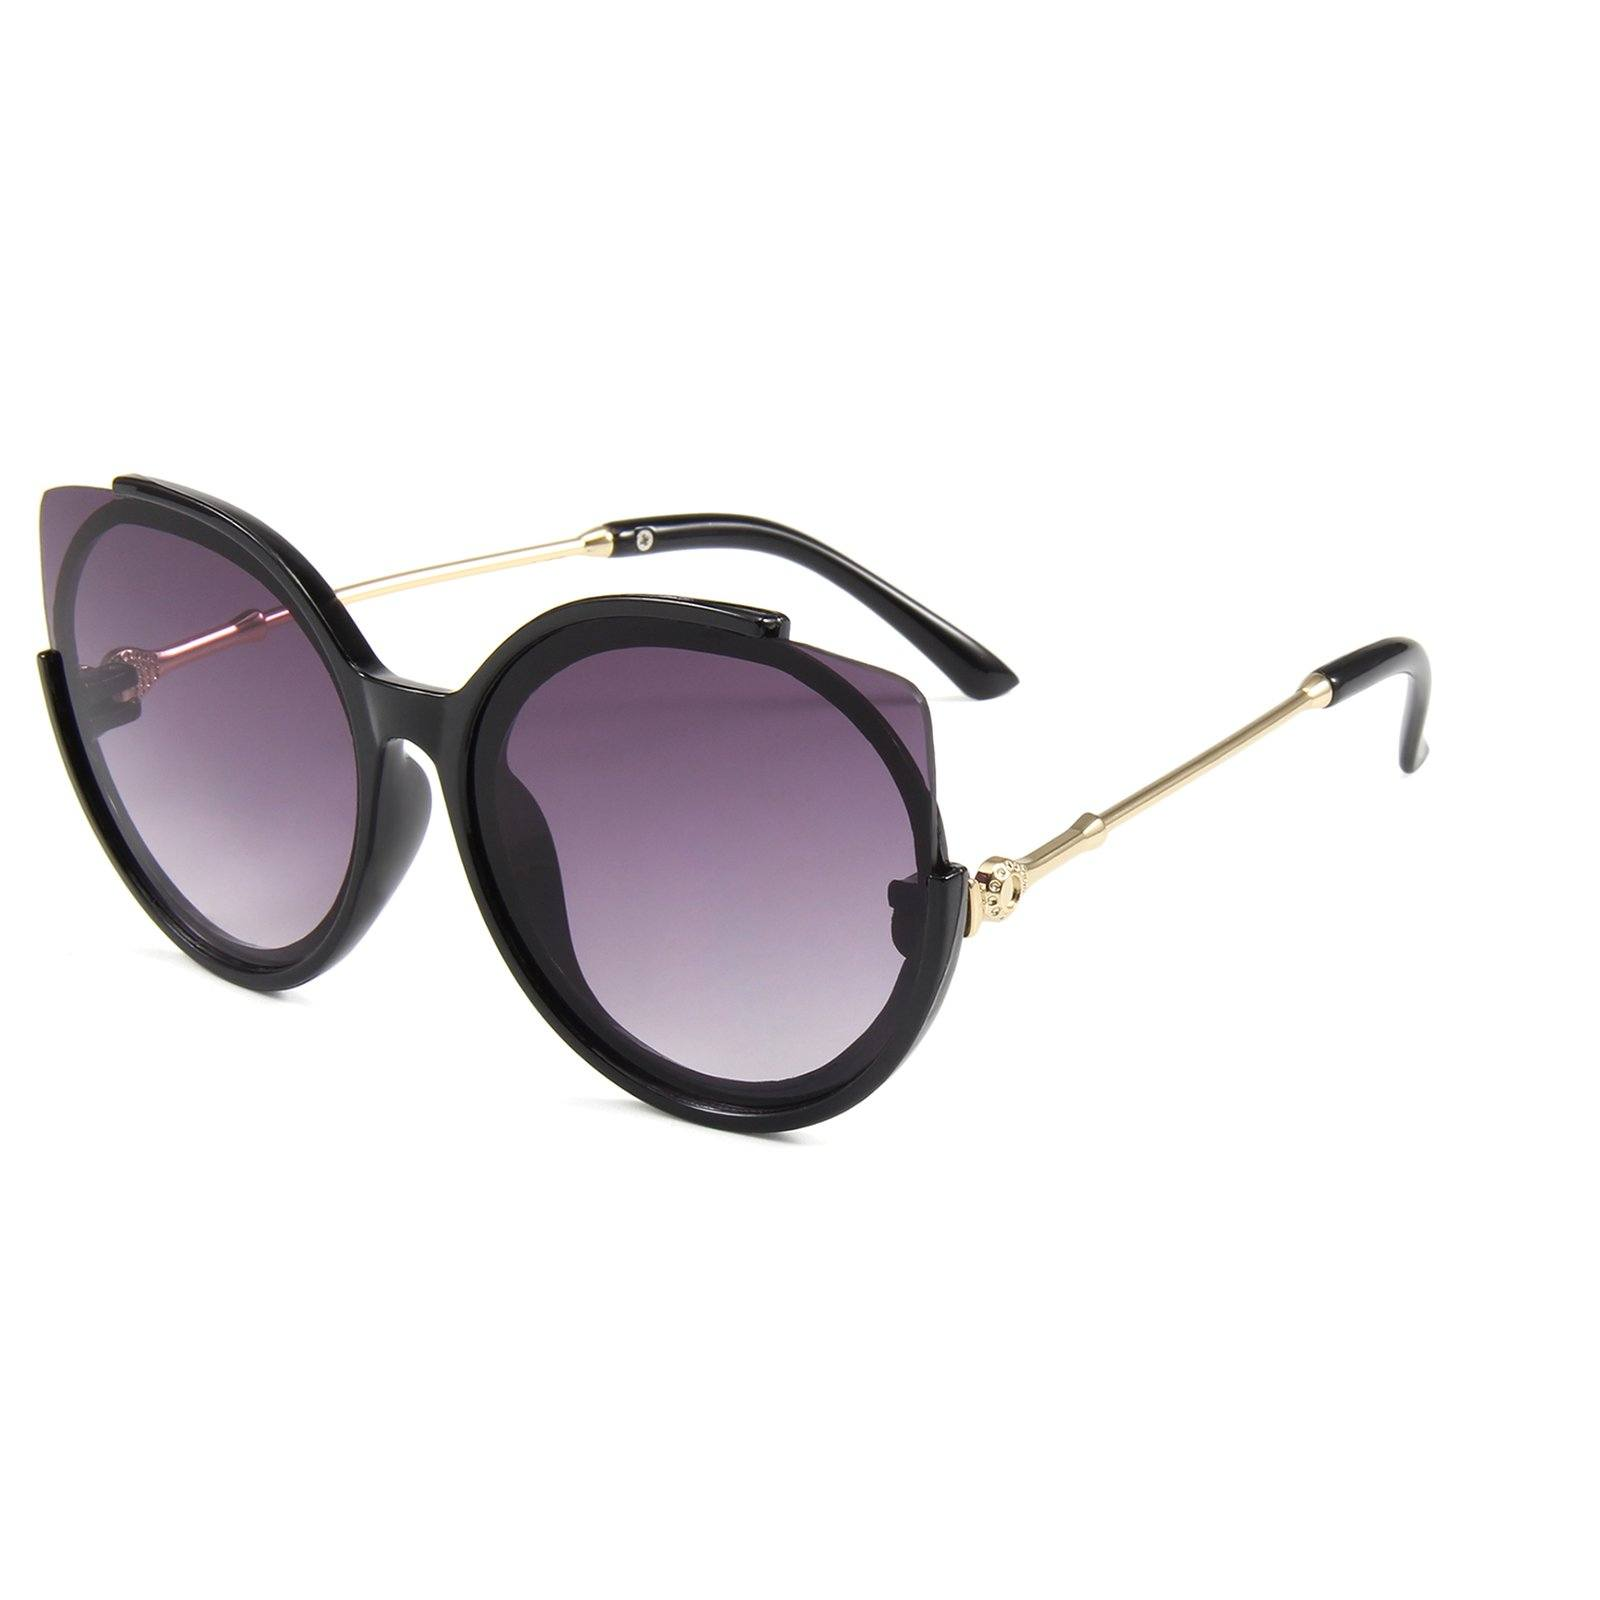 Kitty Sunglasses (Black)